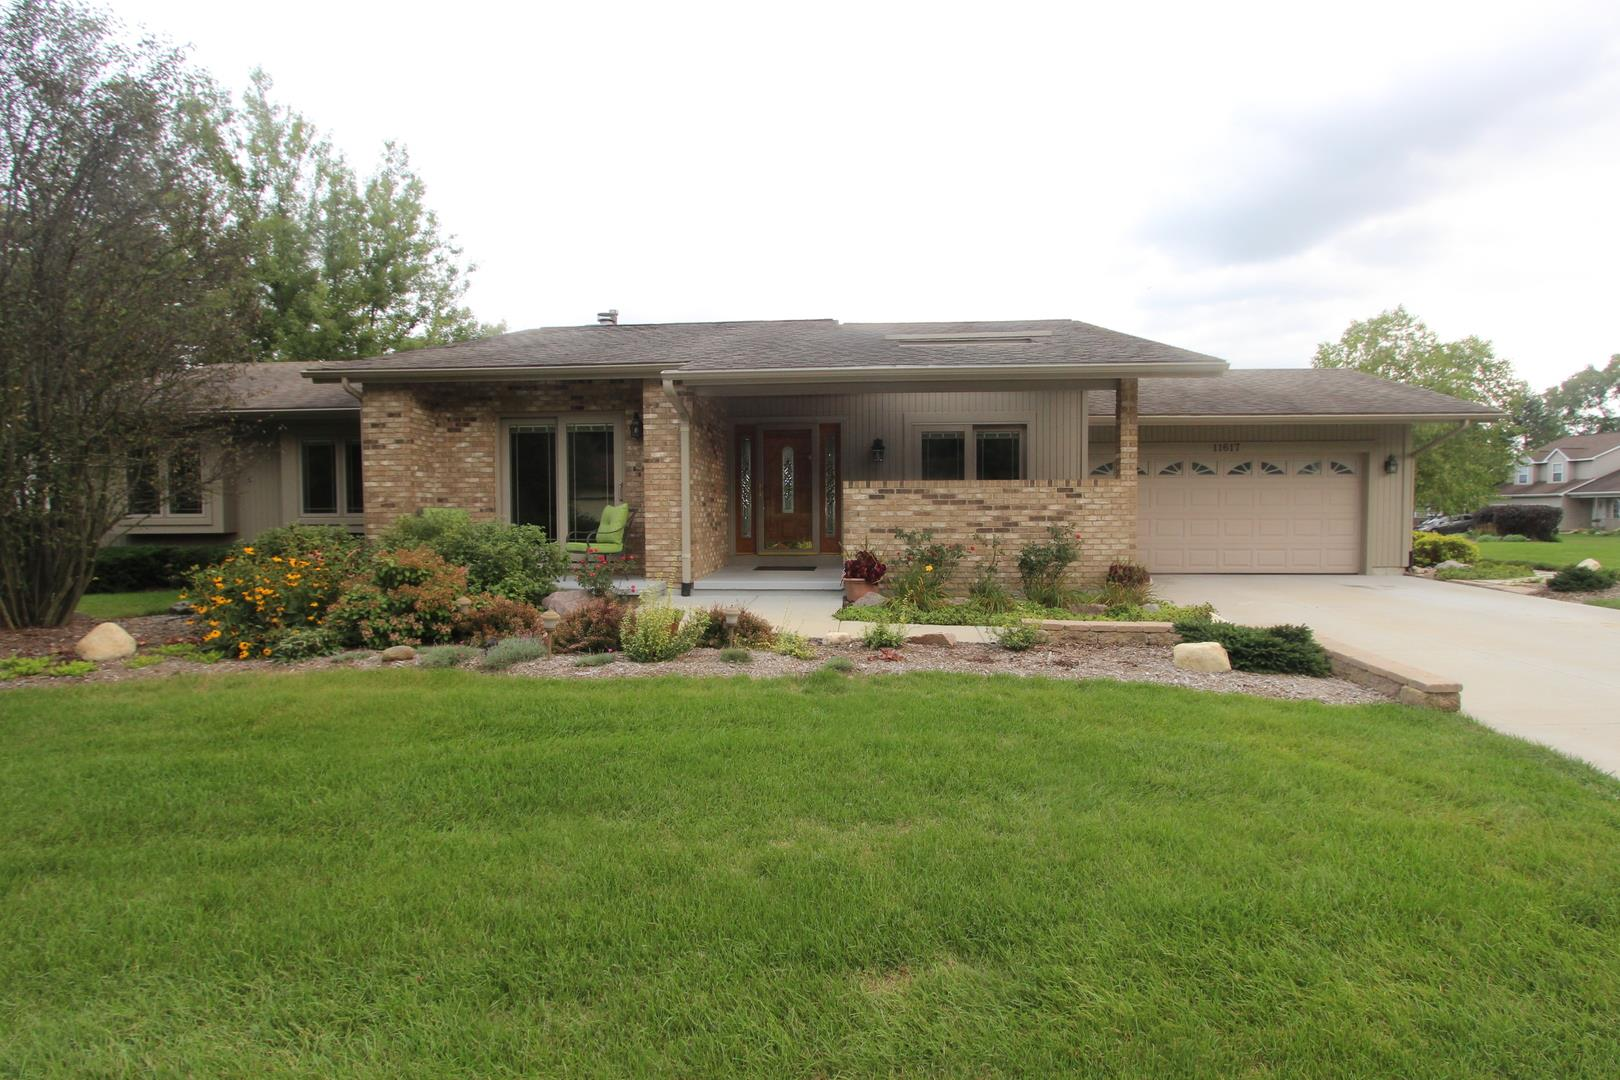 11617 Halma Lane, Woodstock, IL 60098 - #: 10806341